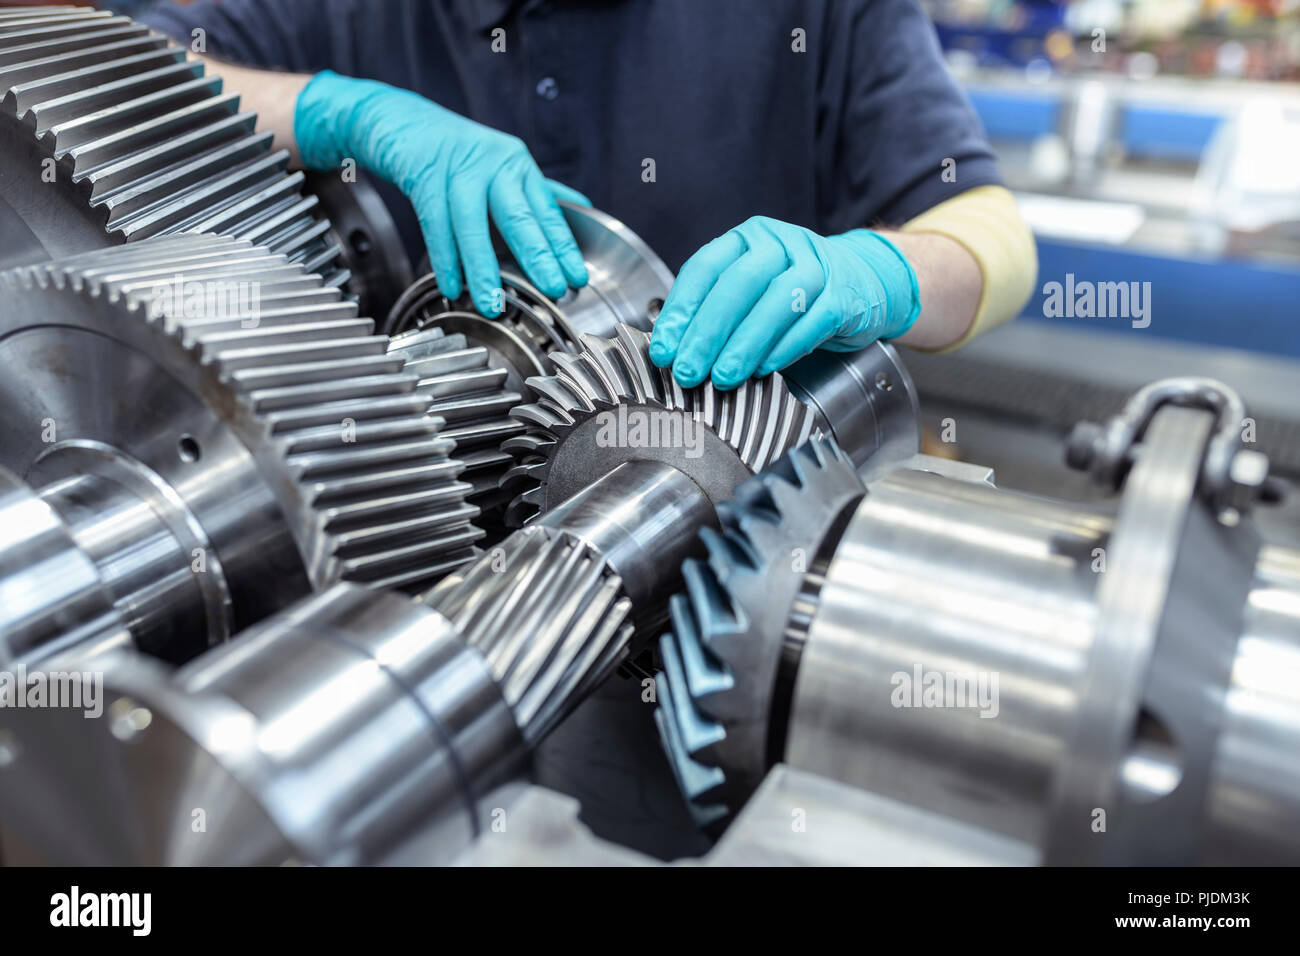 Engineer assembling gearbox in gearbox factory - Stock Image